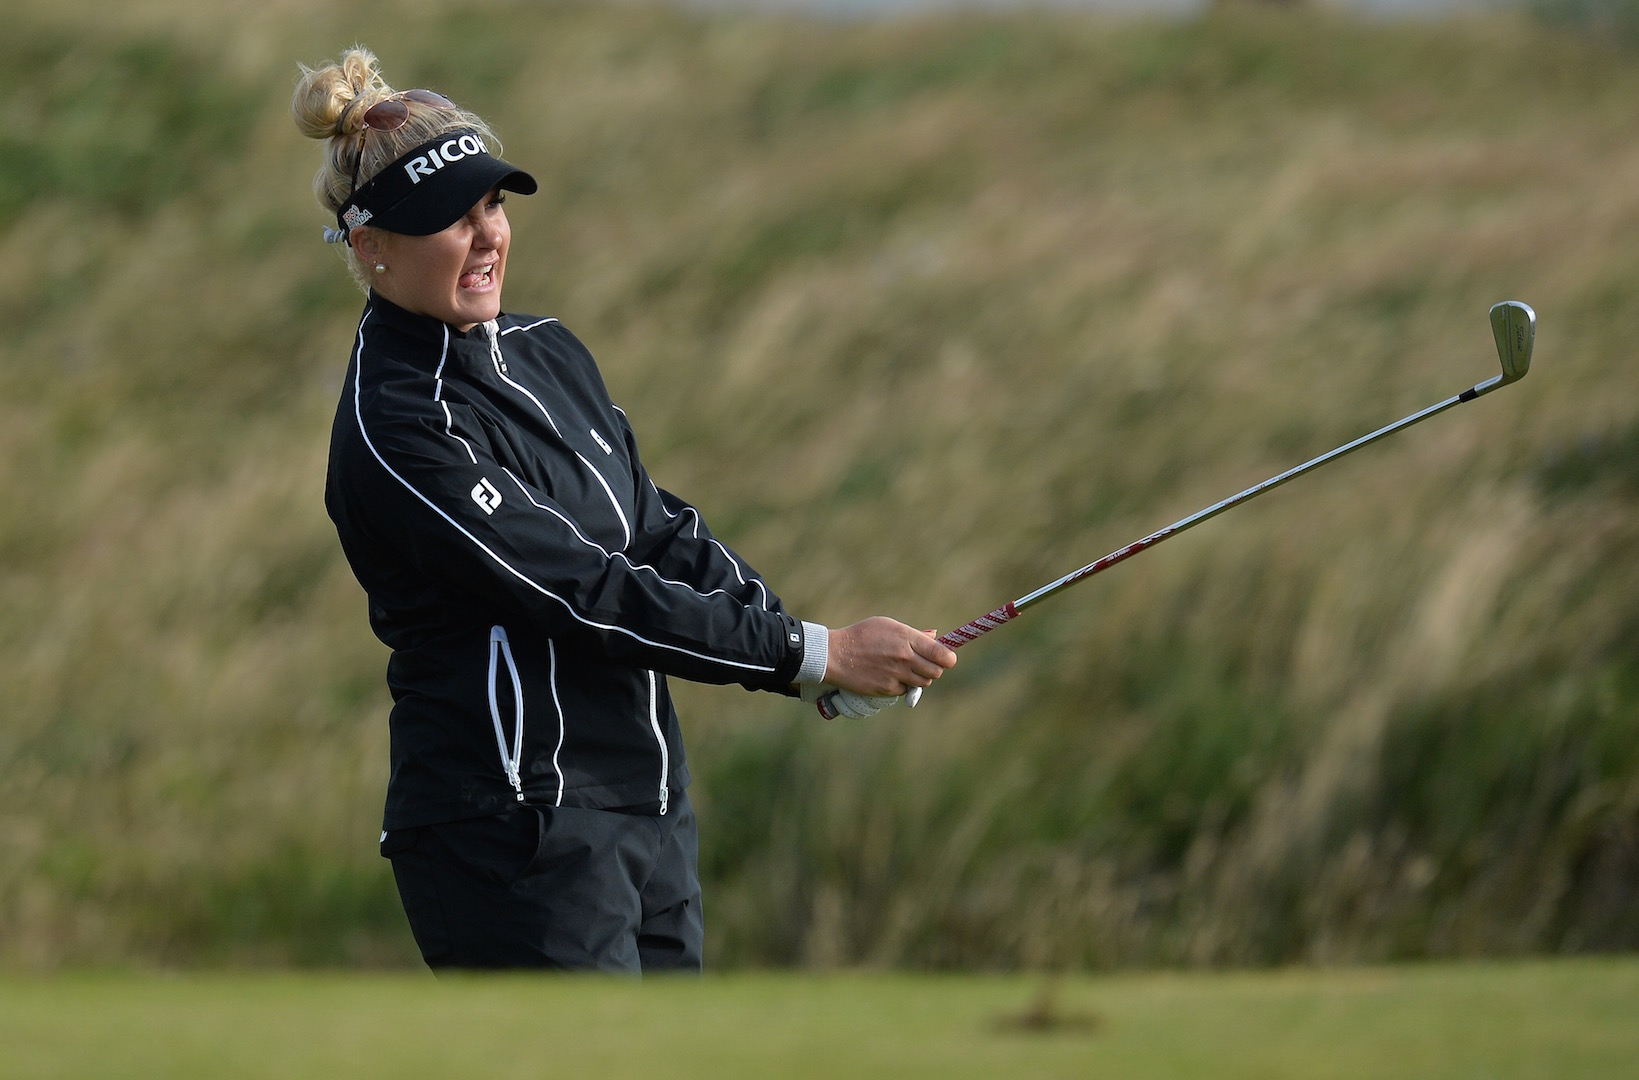 Why the European's could win this year's Solheim Cup